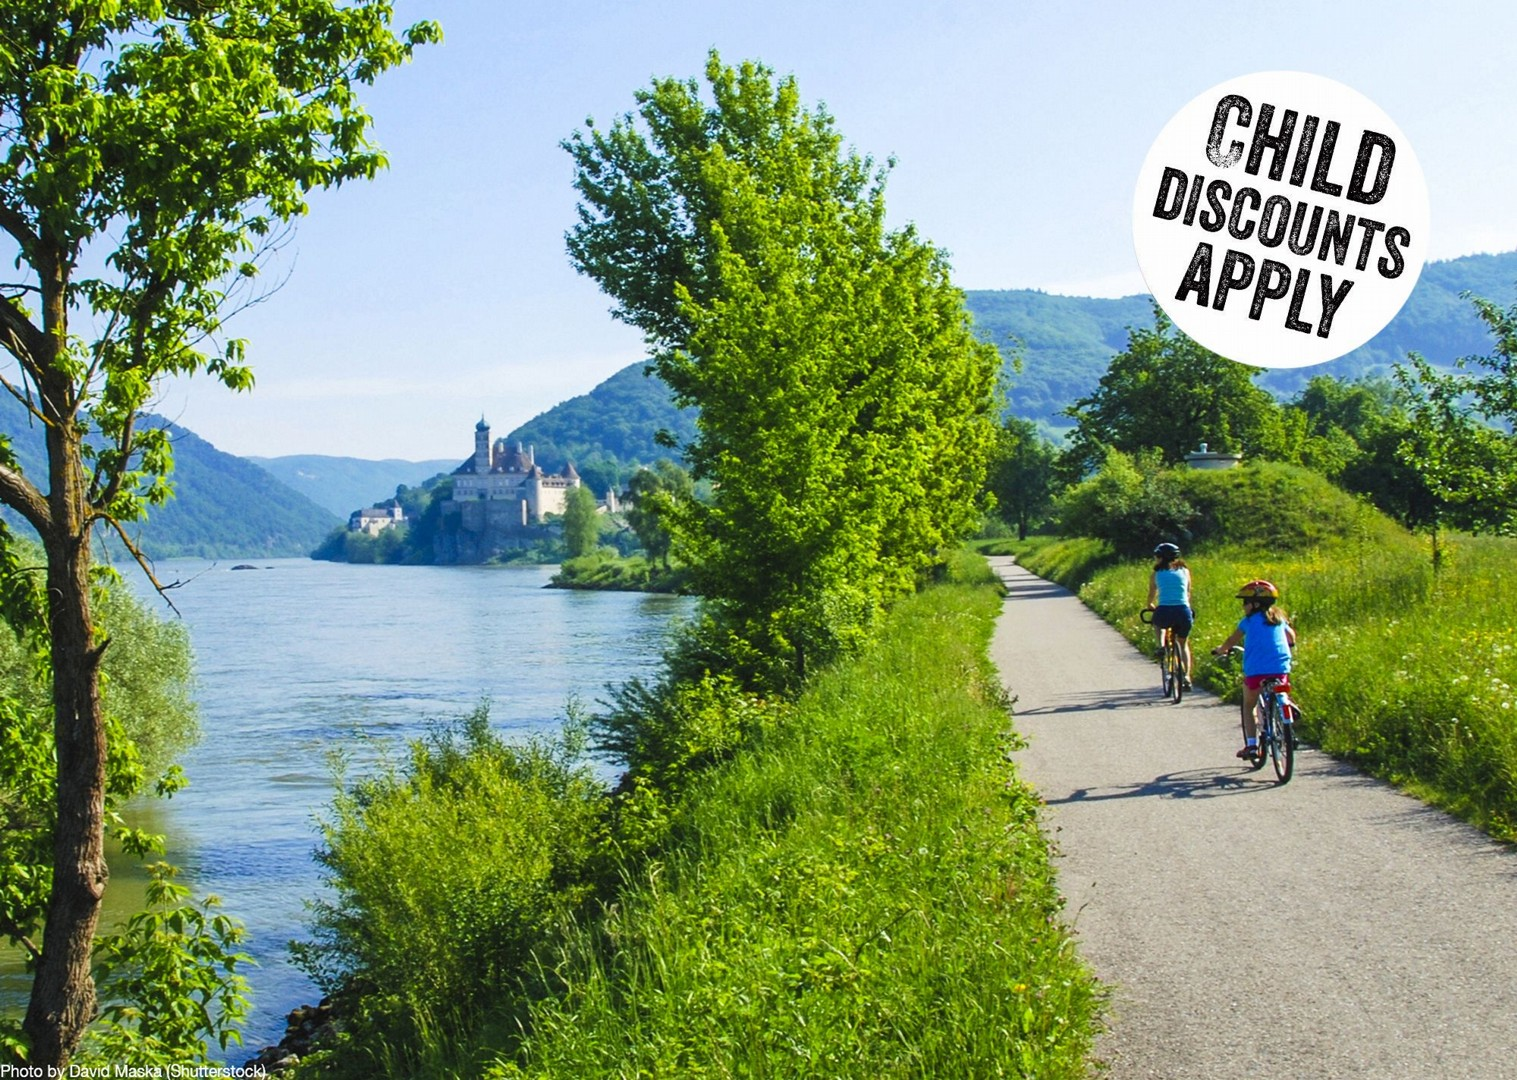 family-cycling-holiday-linz-to-vienna-austria.jpg - Austria - Blue Danube - Linz to Vienna - Family Cycling